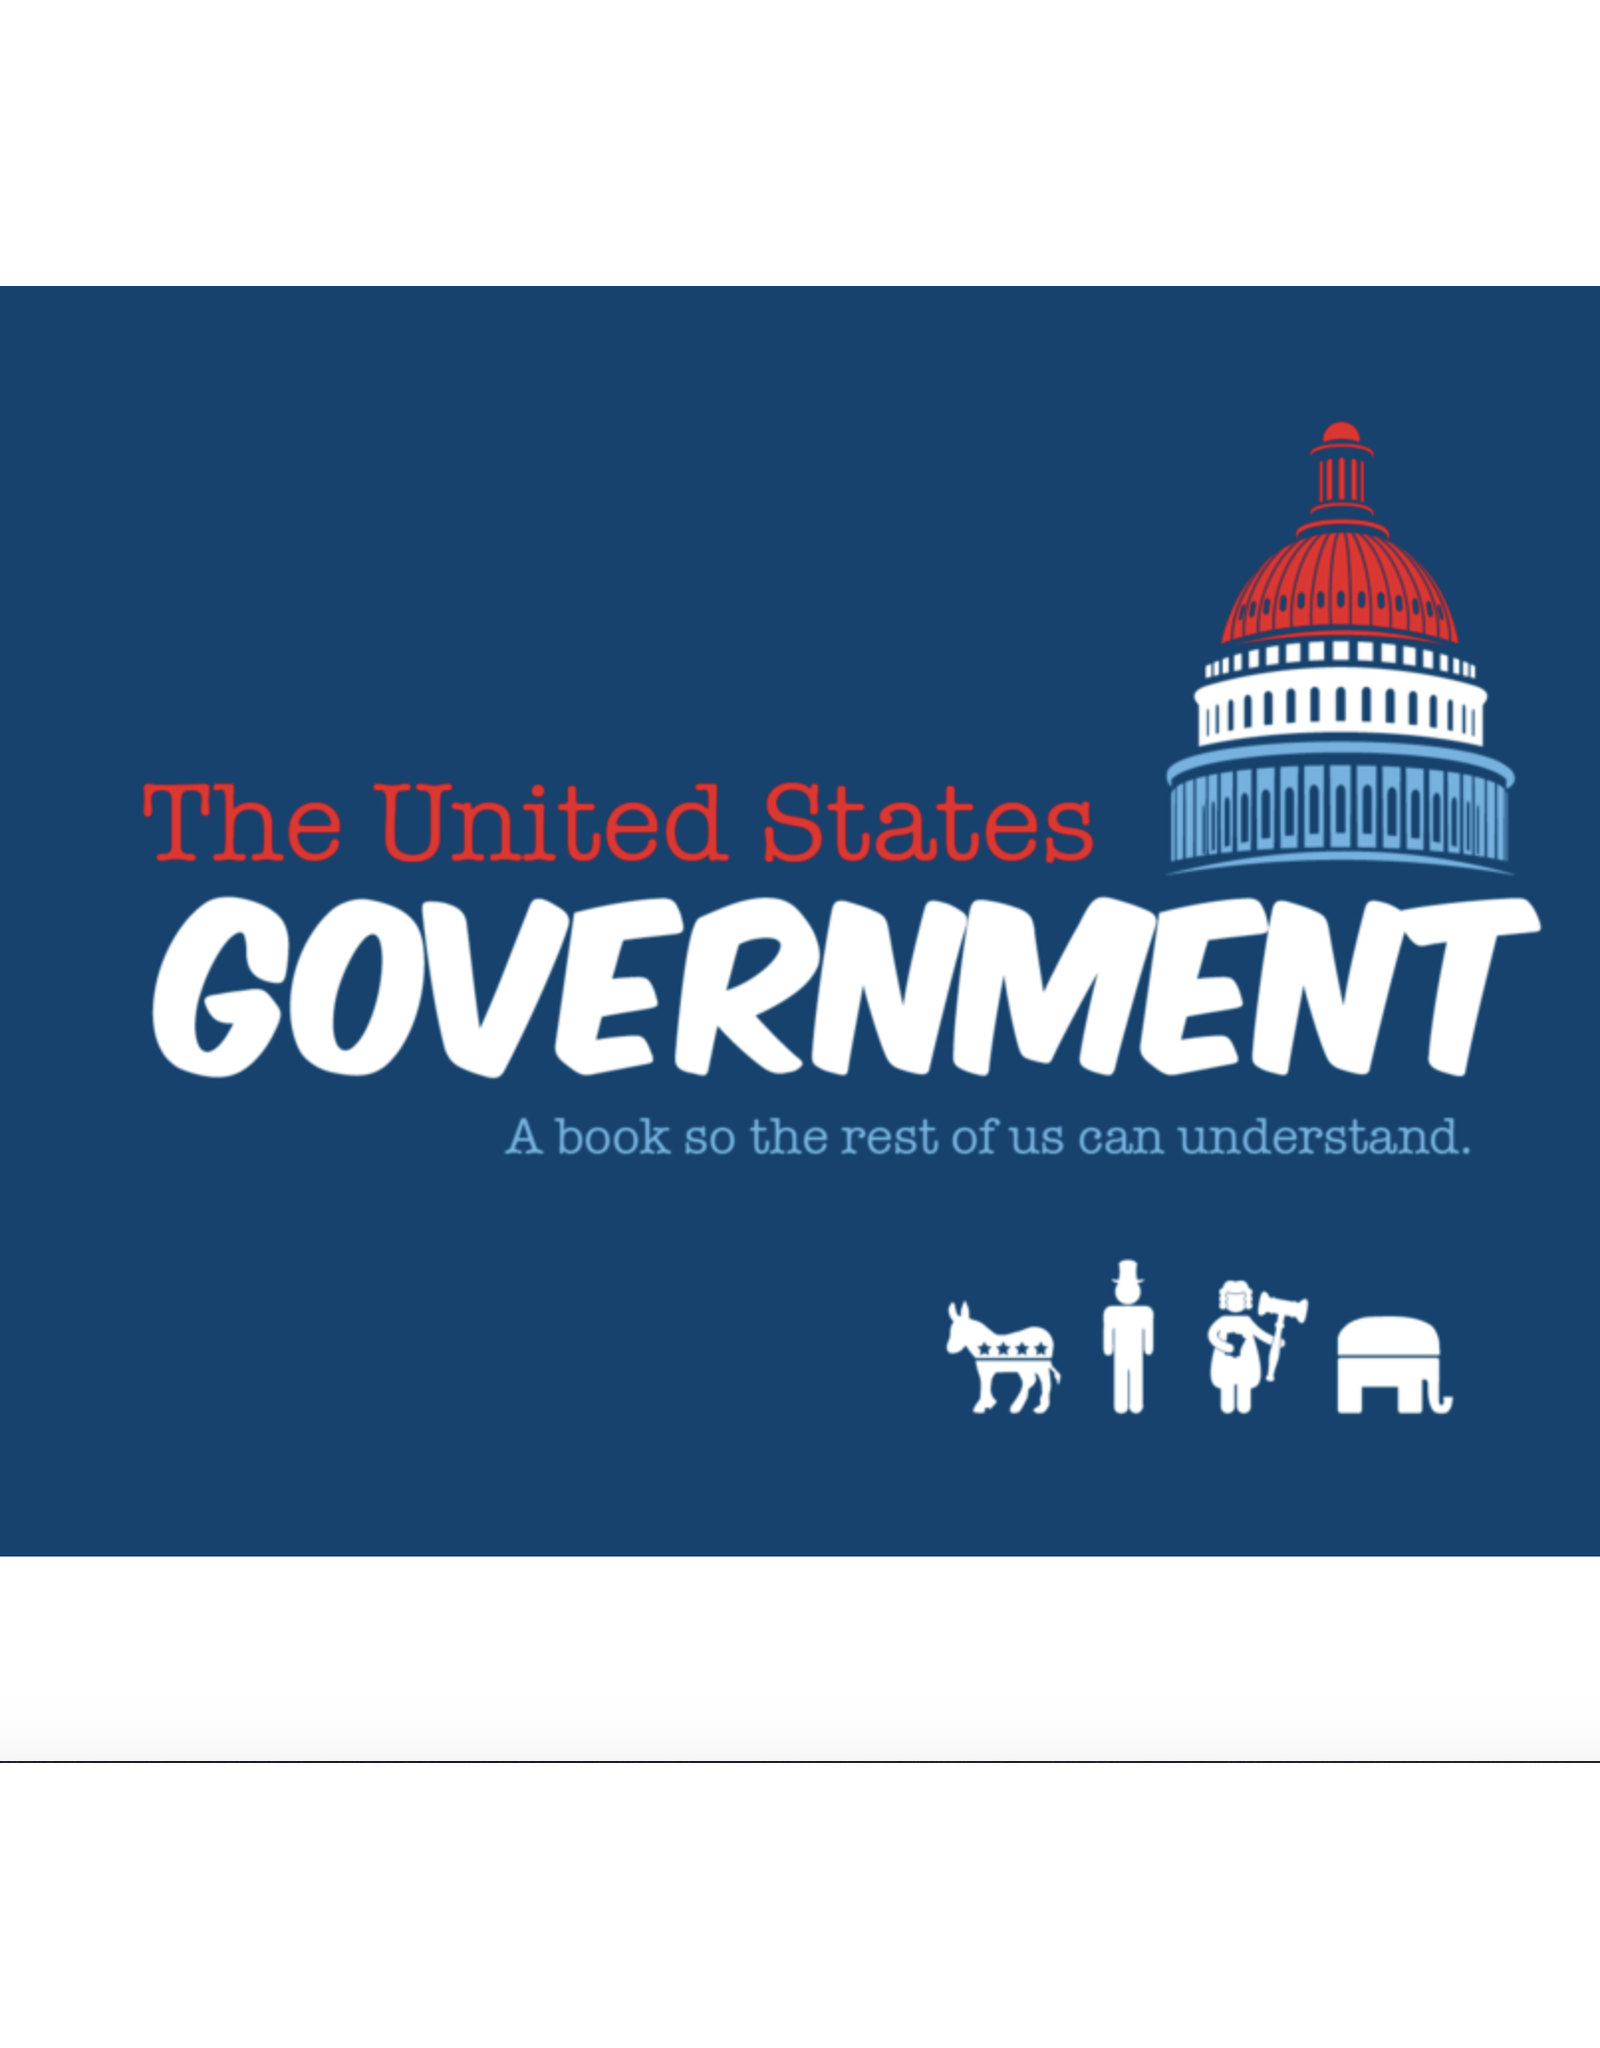 Book - The United States Government